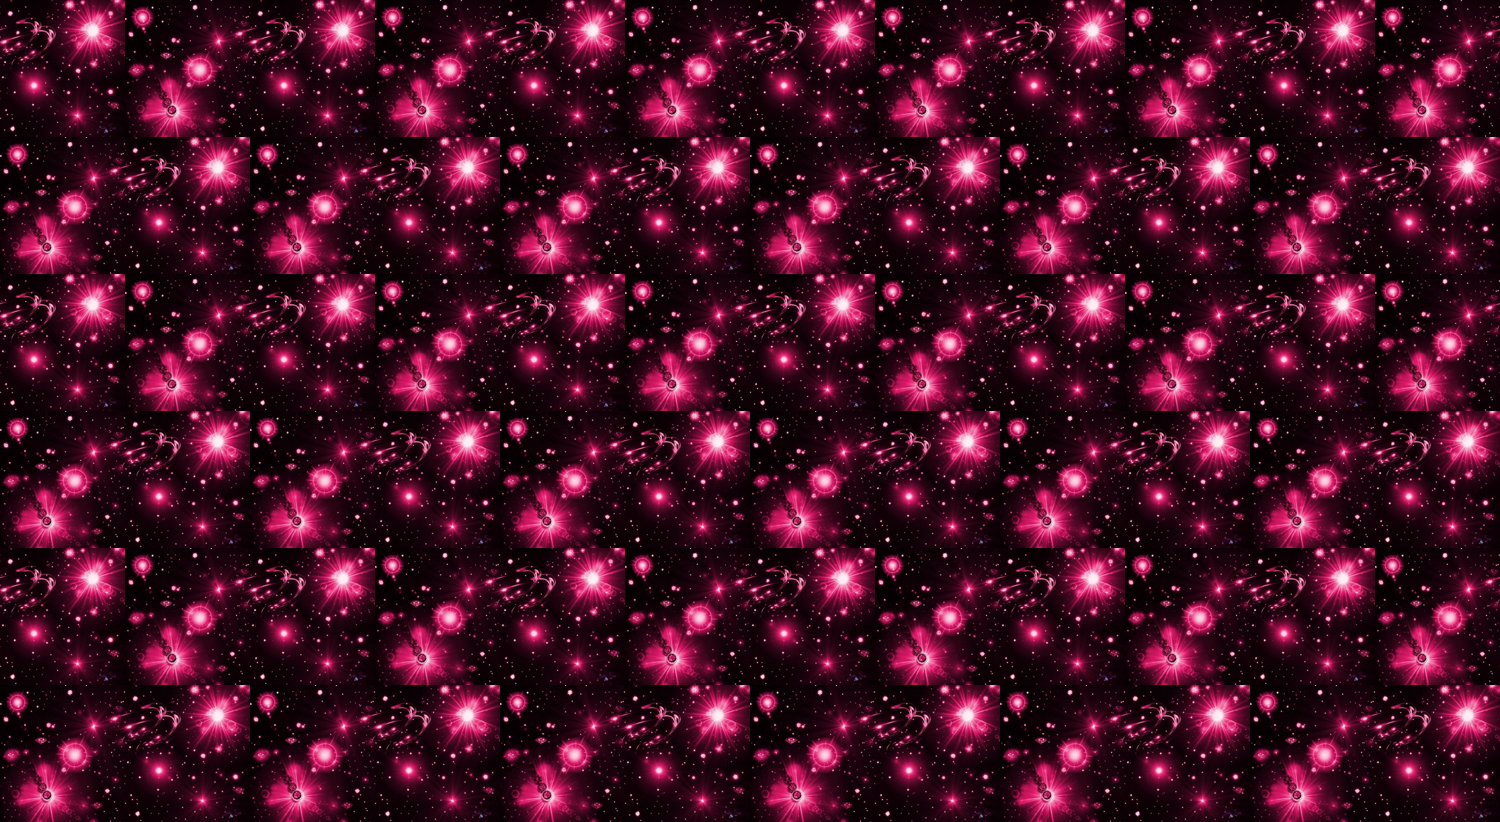 Hot Pink And Black Wallpapers Posted By John Mercado